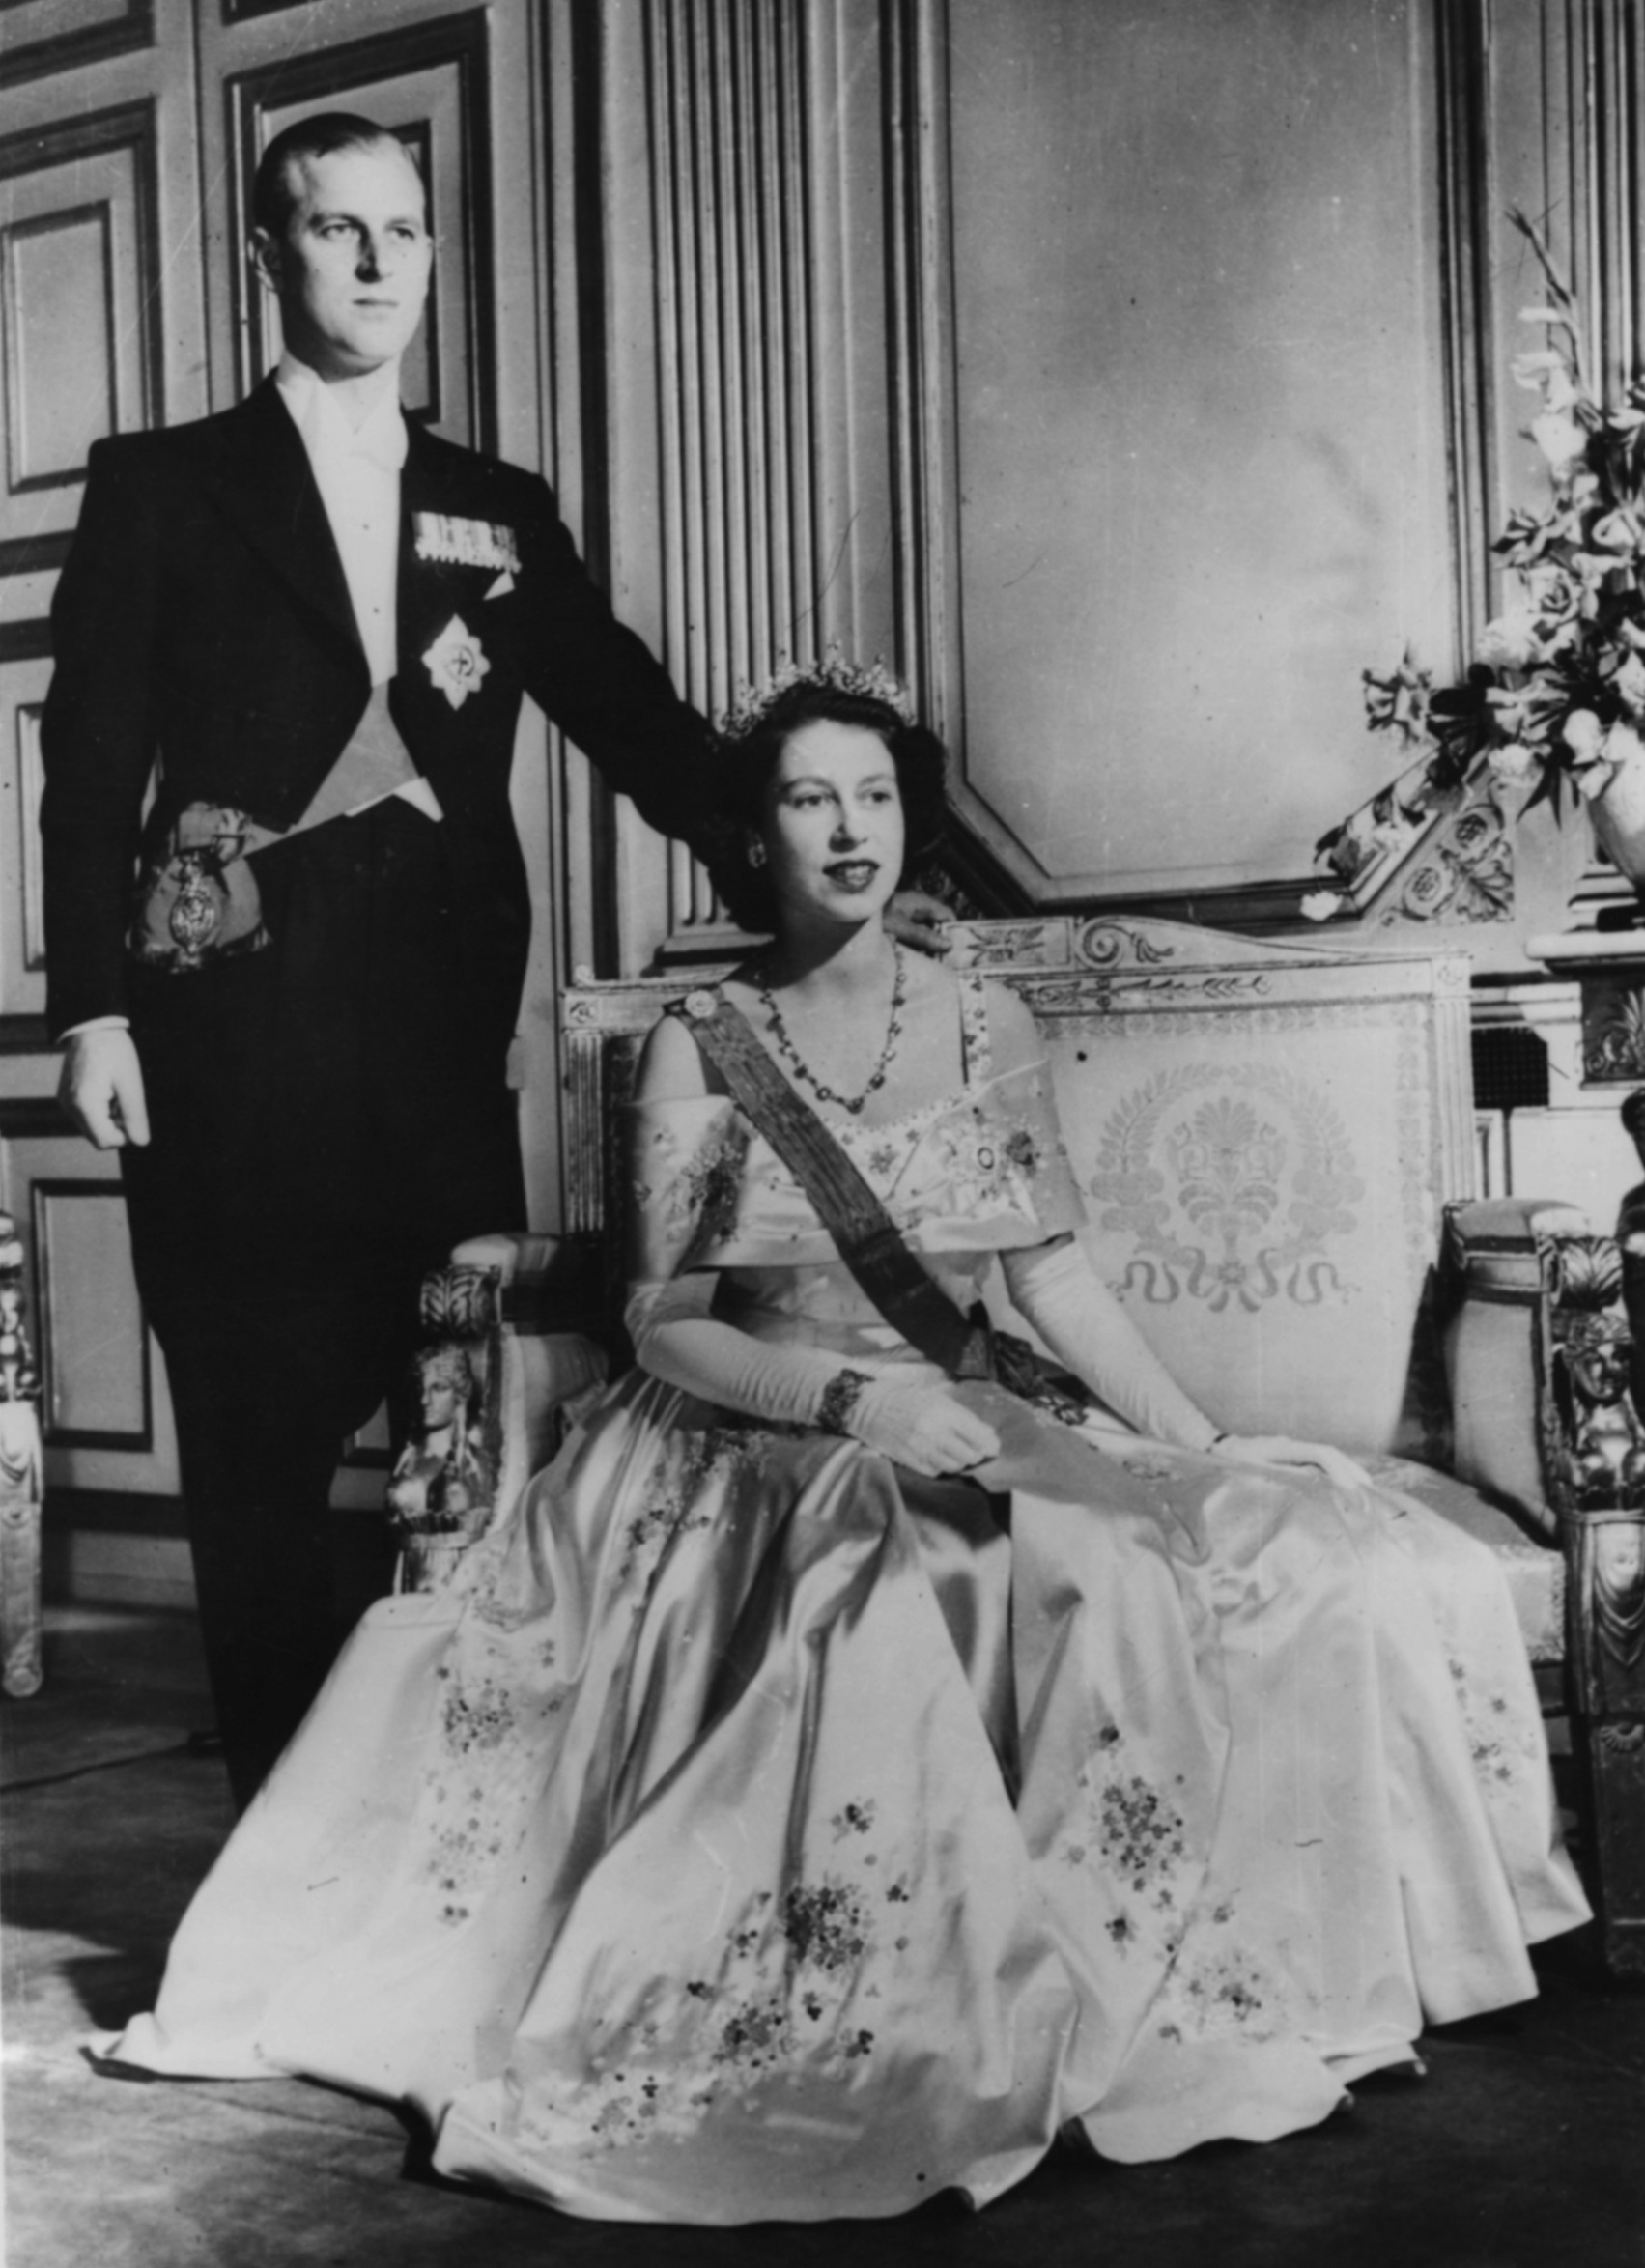 Portrait of Queen Elizabeth II and Prince Philip, the Duke of Edinburgh, circa 1952. (Photo by Keystone/Hulton Archive/Getty Images)